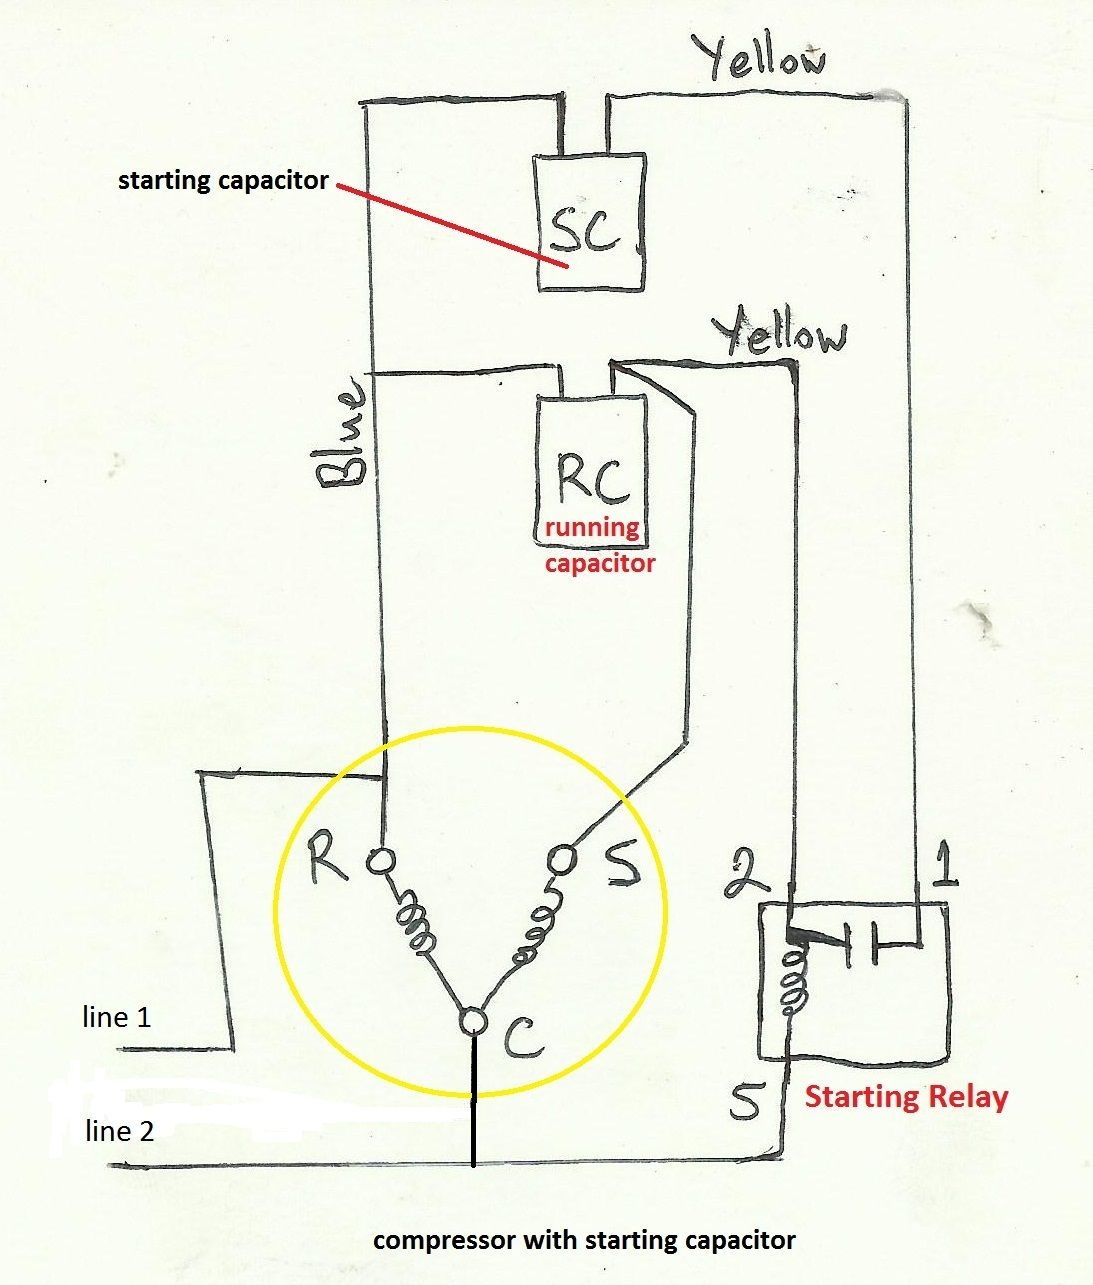 Wiring Diagram for Air Compressor Motor - Wiring Diagram for Air Pressor  Motor Air Pressor Capacitor